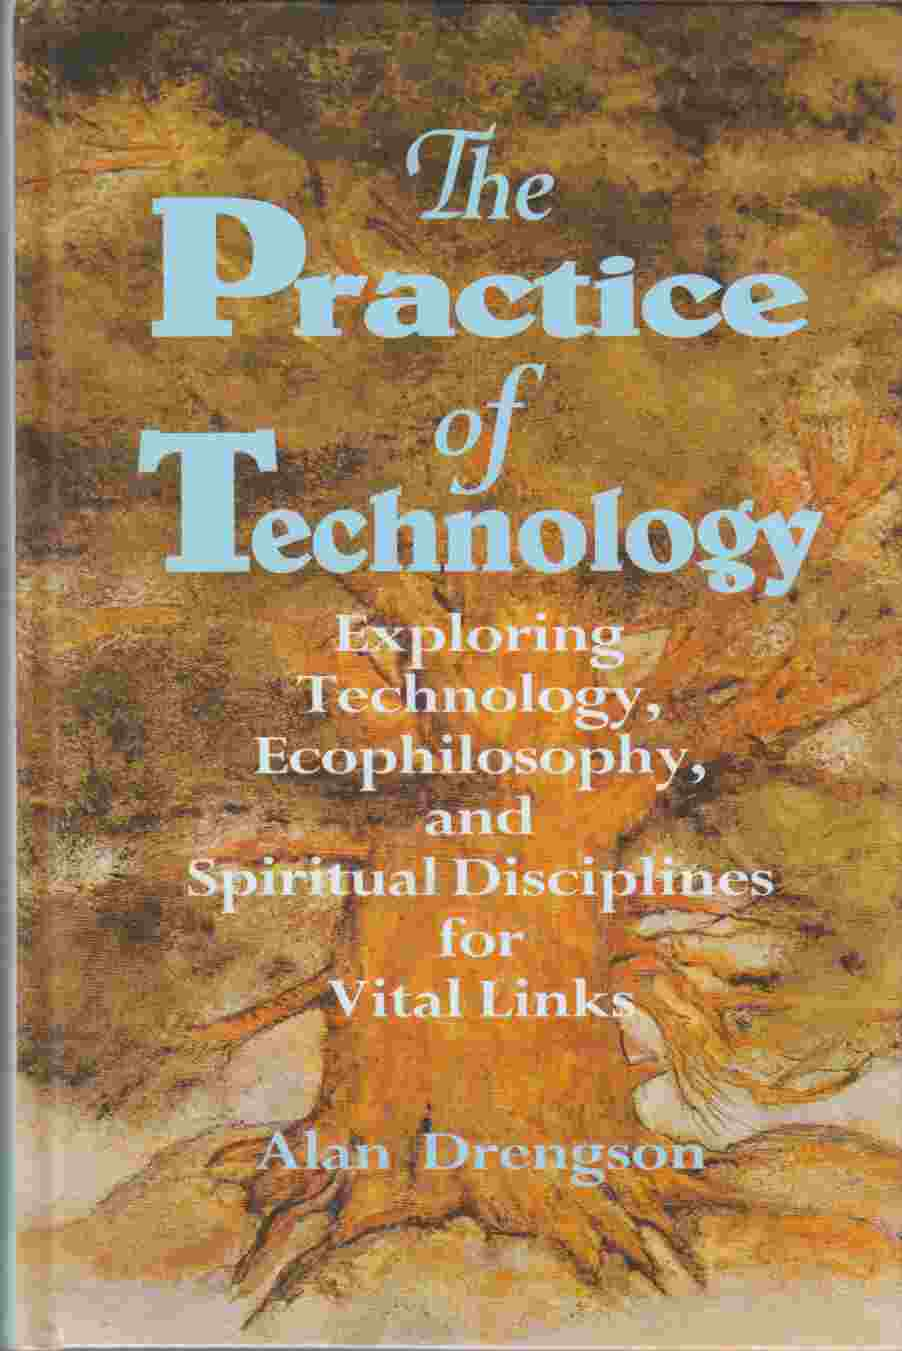 Image for The Practice of Technology Exploring Technology, Ecophilosophy, and Spiritual Disciplines for Vital Links